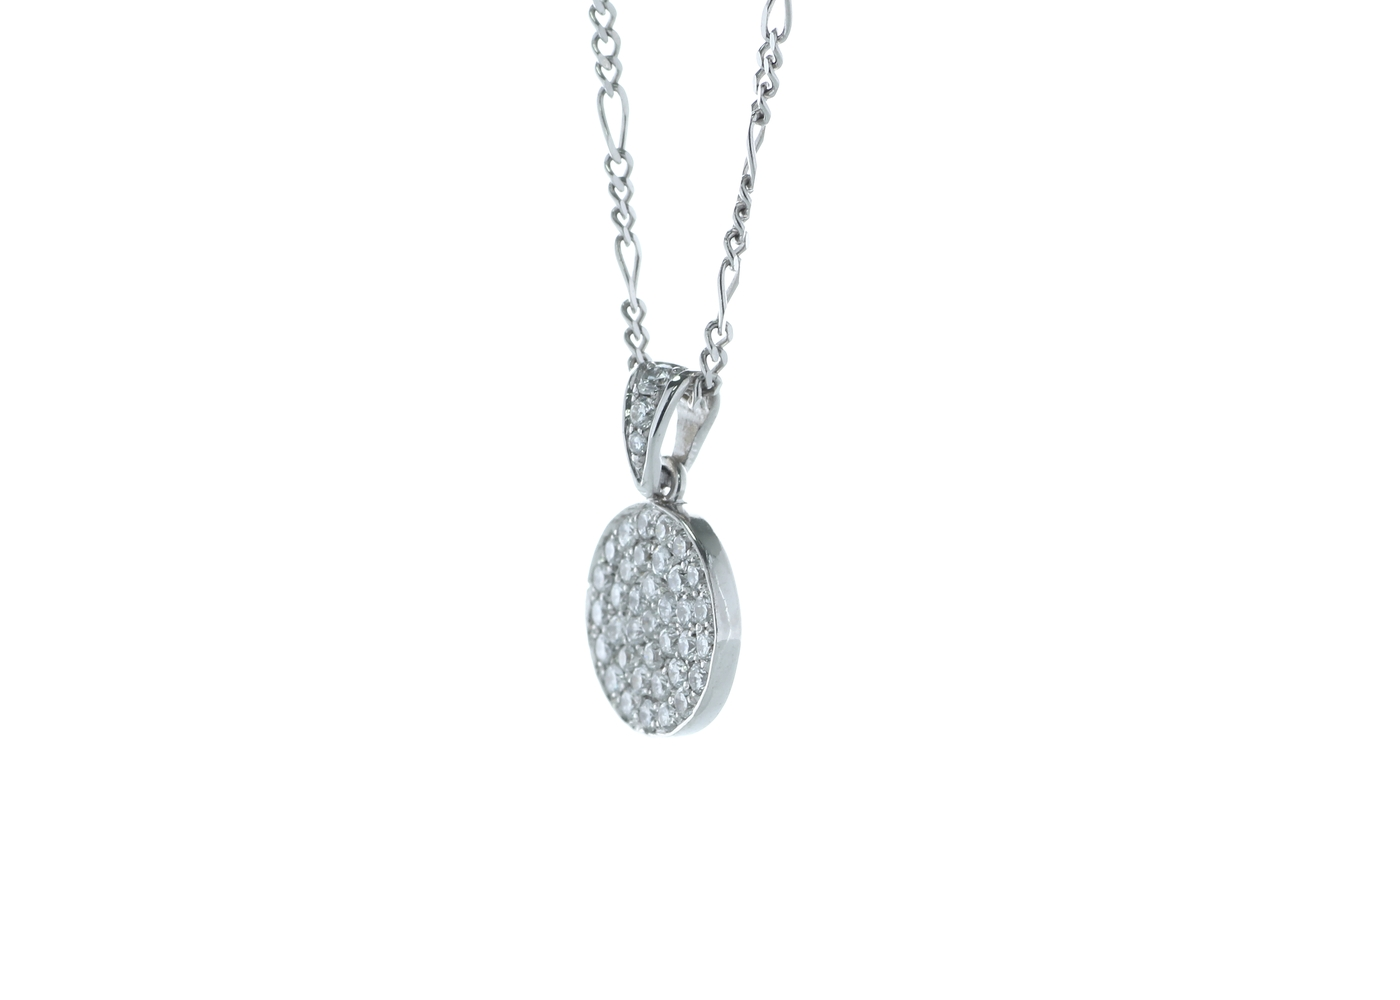 18ct White Gold Cluster Diamond Pendant 0.40 Carats - Image 2 of 4